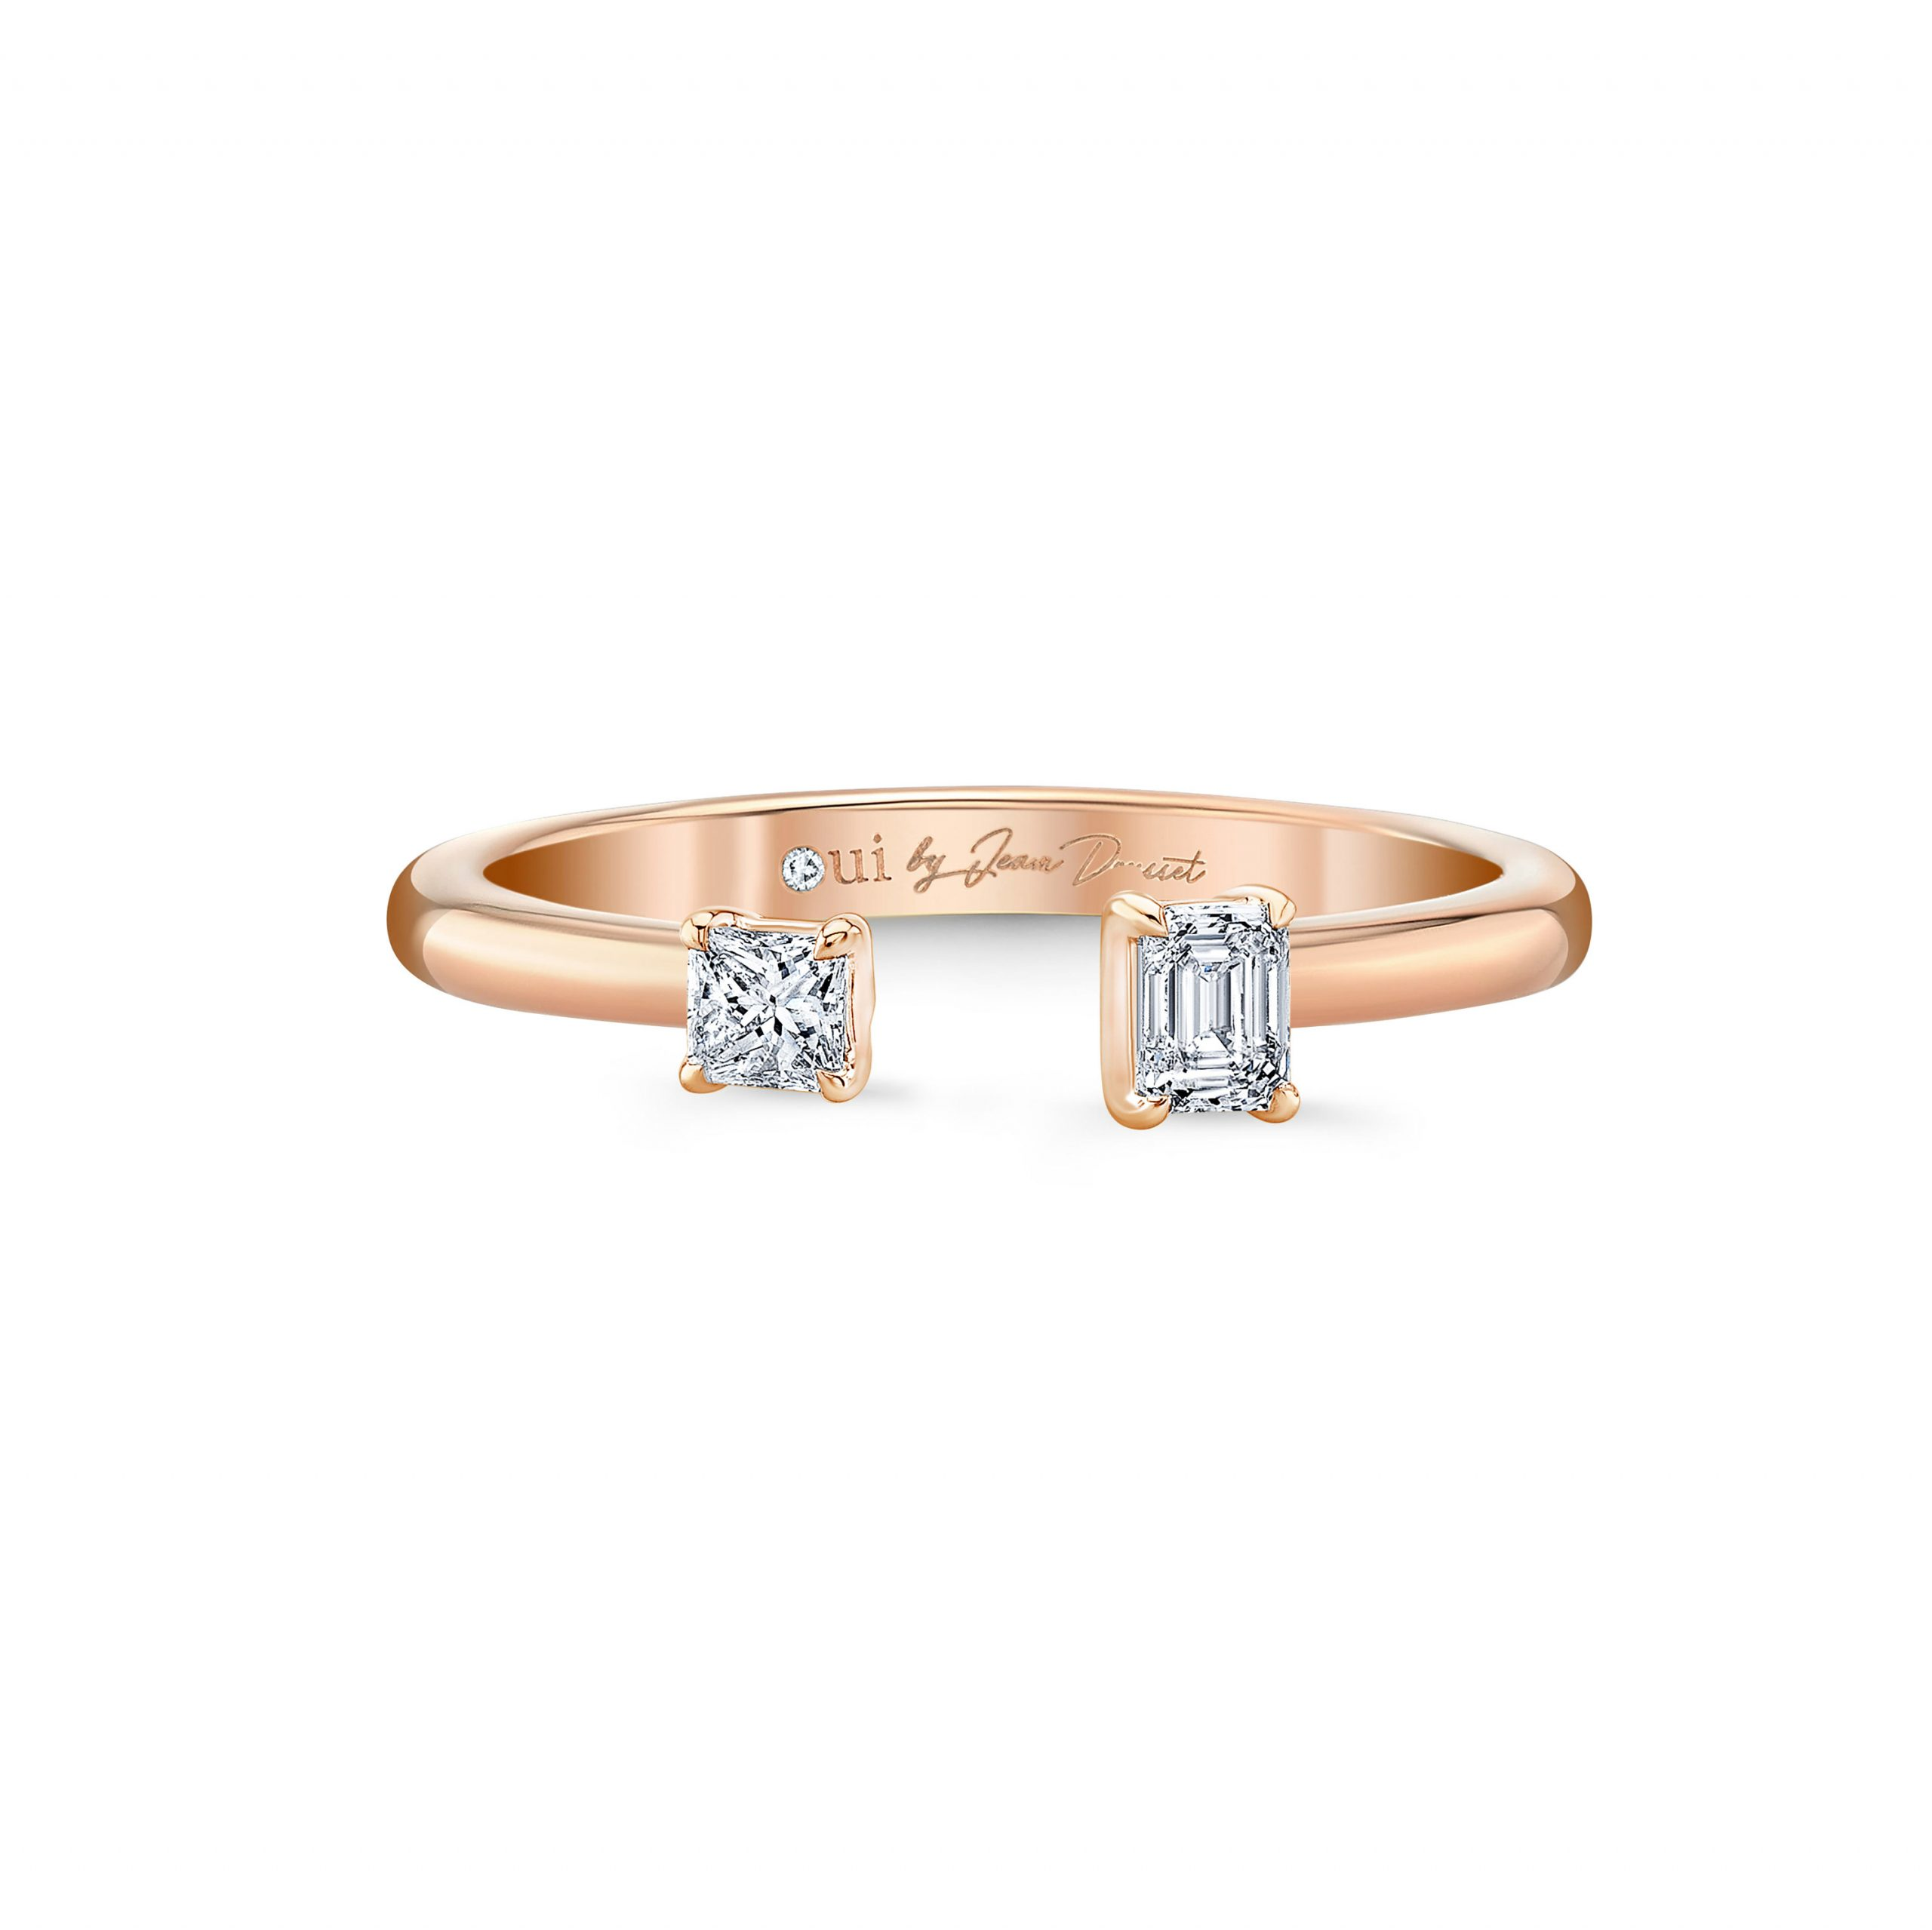 Celeste Mixed Diamond Open Ring, princess & emerald in 18k Rose Gold Front View by Oui by Jean Dousset